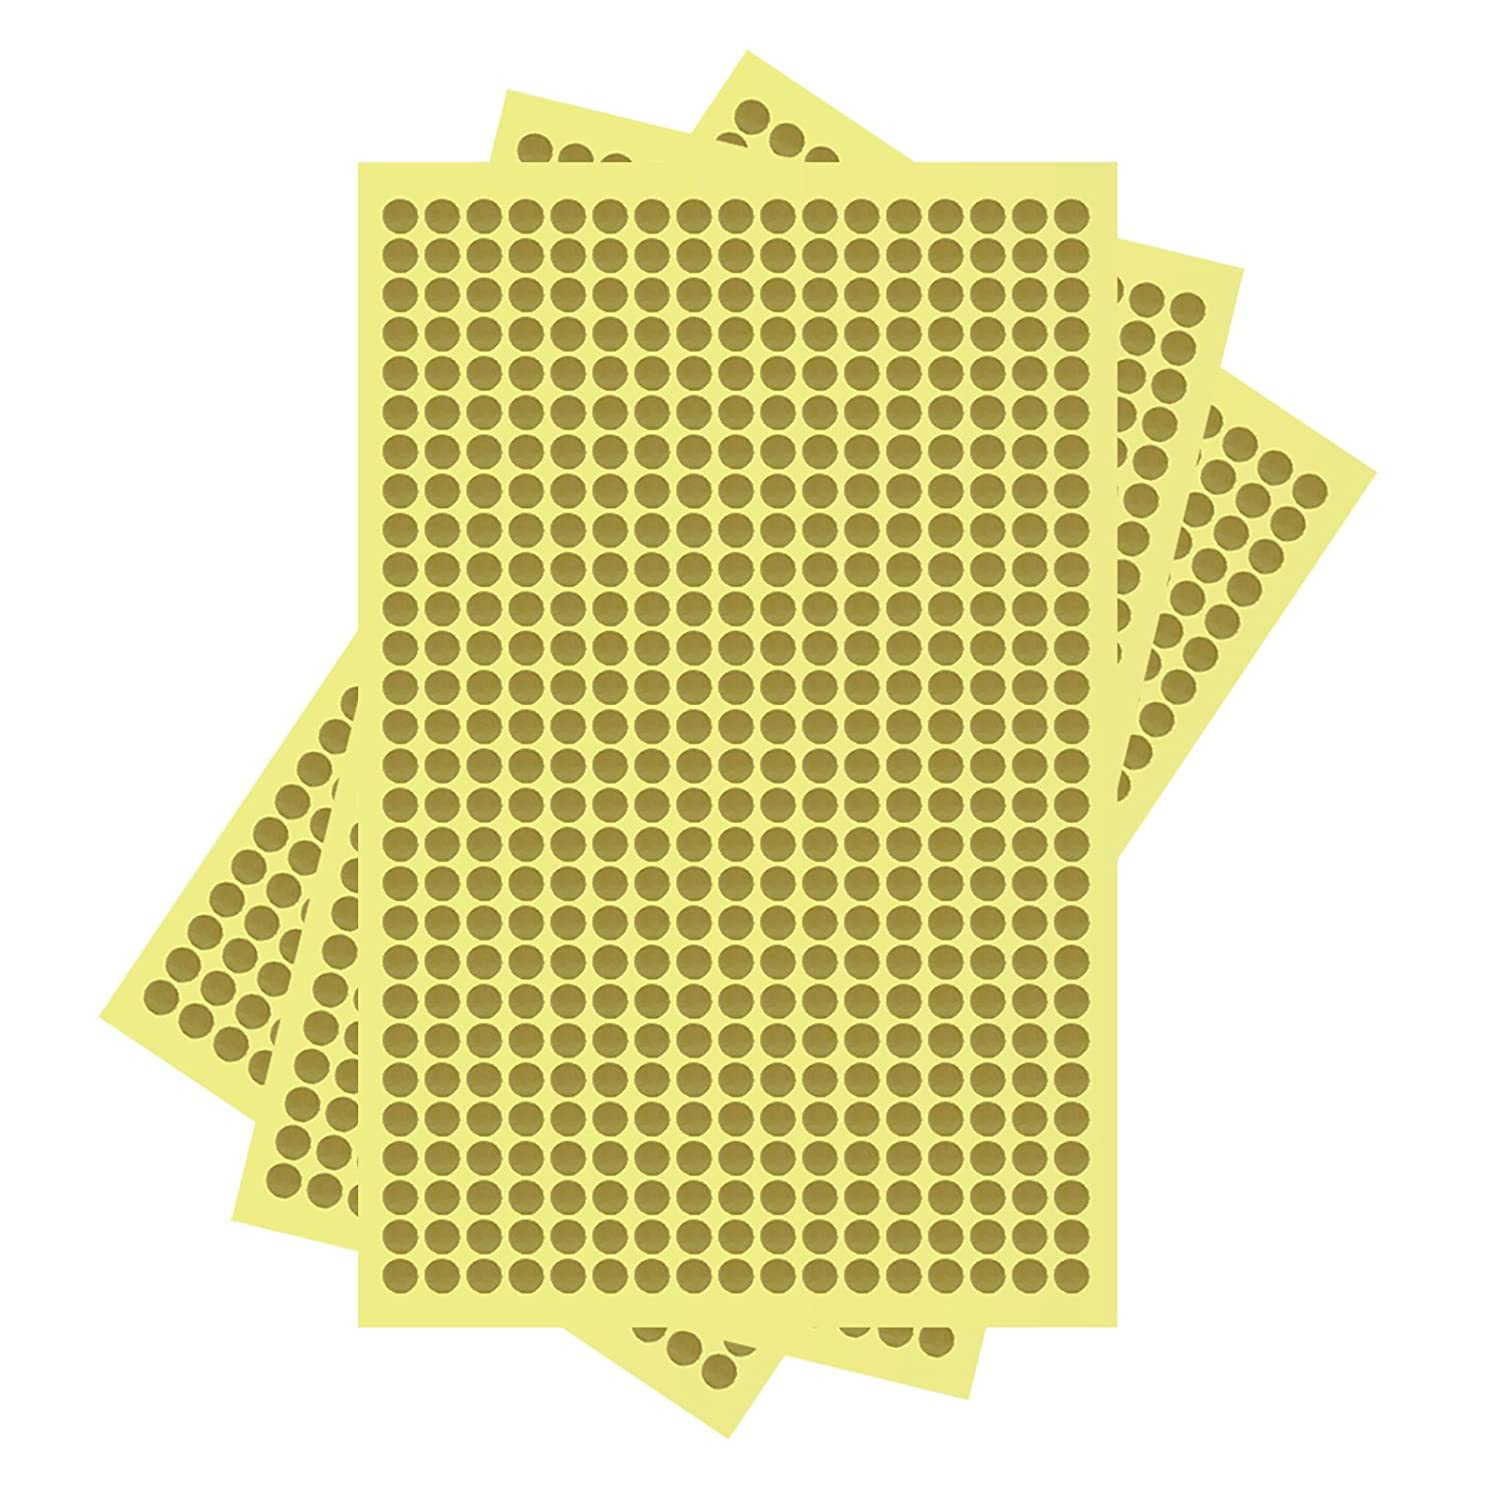 6mm Round Dots 10 Sheets 4000 Dots Self Adhesive Stickers Brown